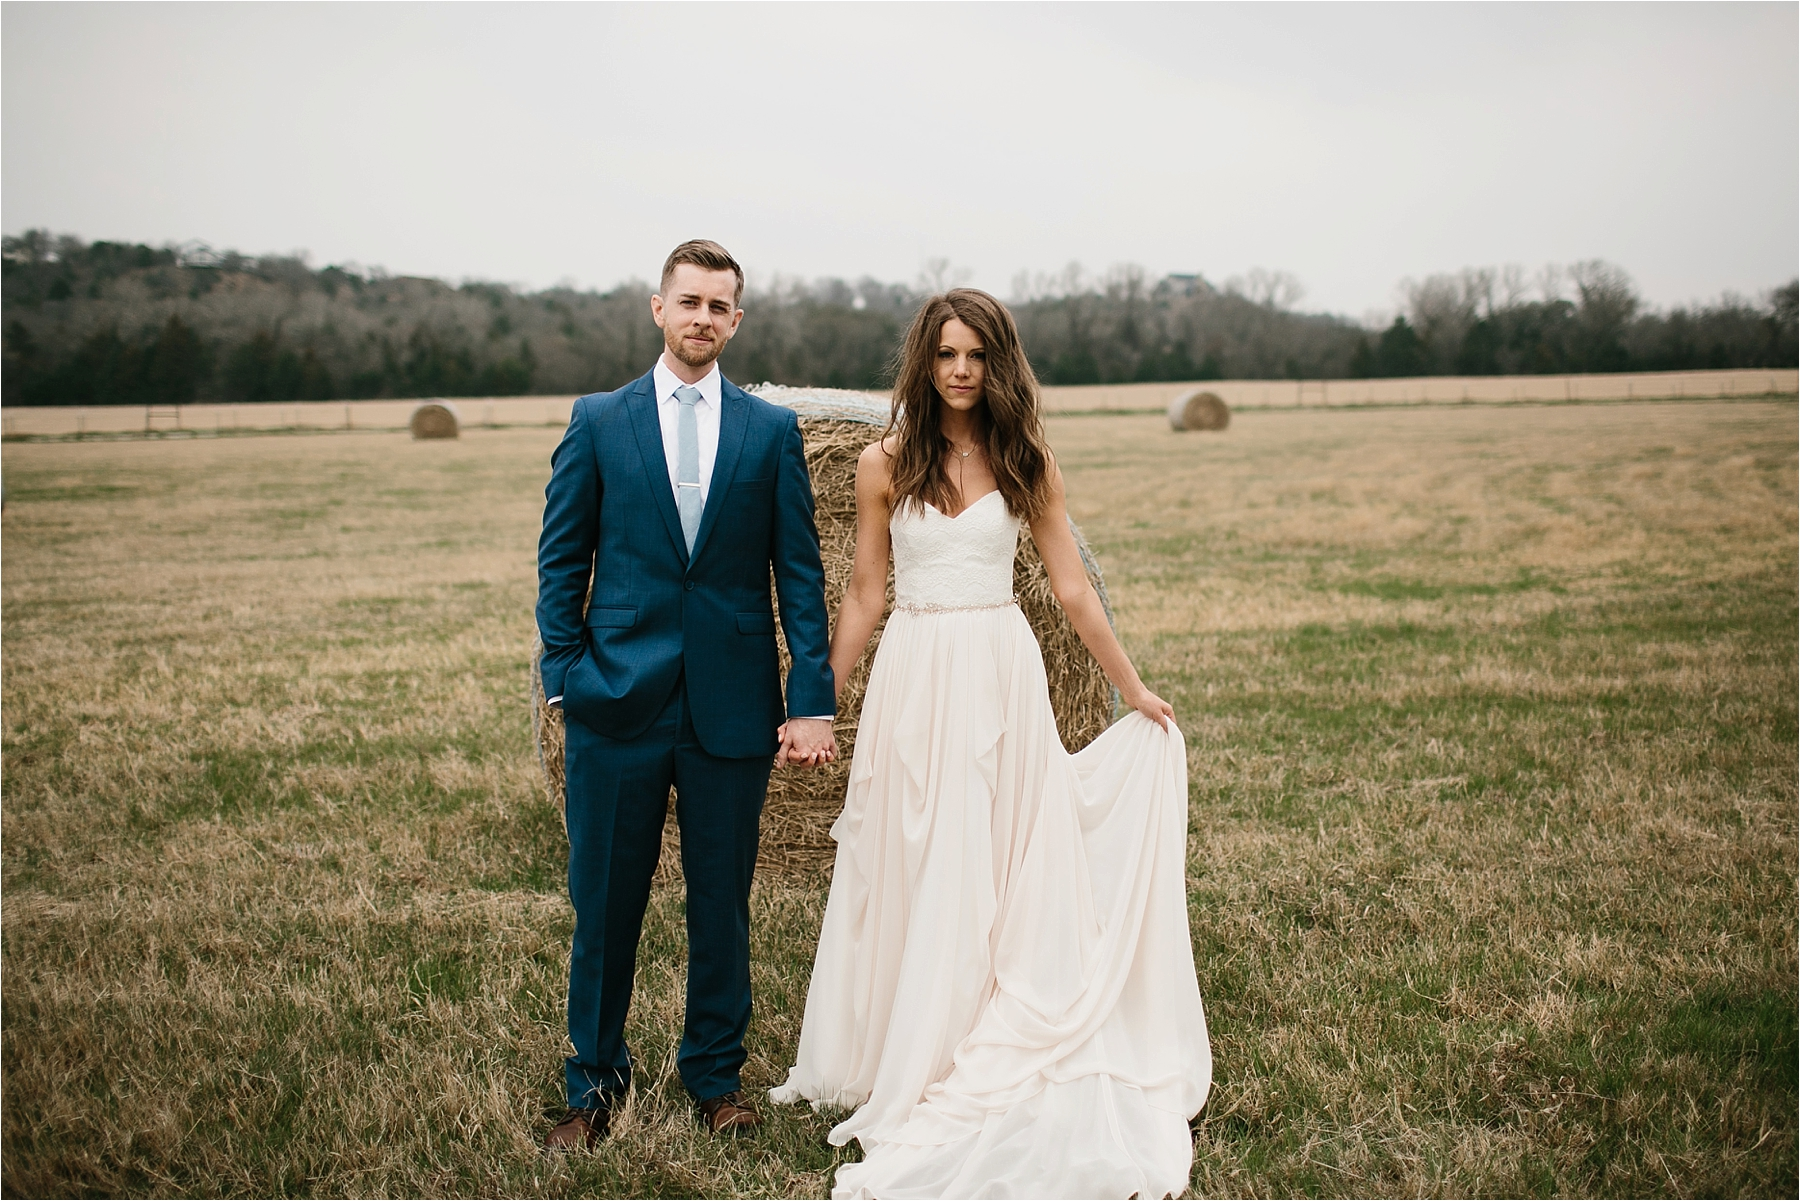 Lauren + Matt __ an intimate, emotional, blush pink, navy blue, and greenery toned wedding accents at the Brooks at Weatherford by North Texas Wedding Photographer Rachel Meagan Photography056